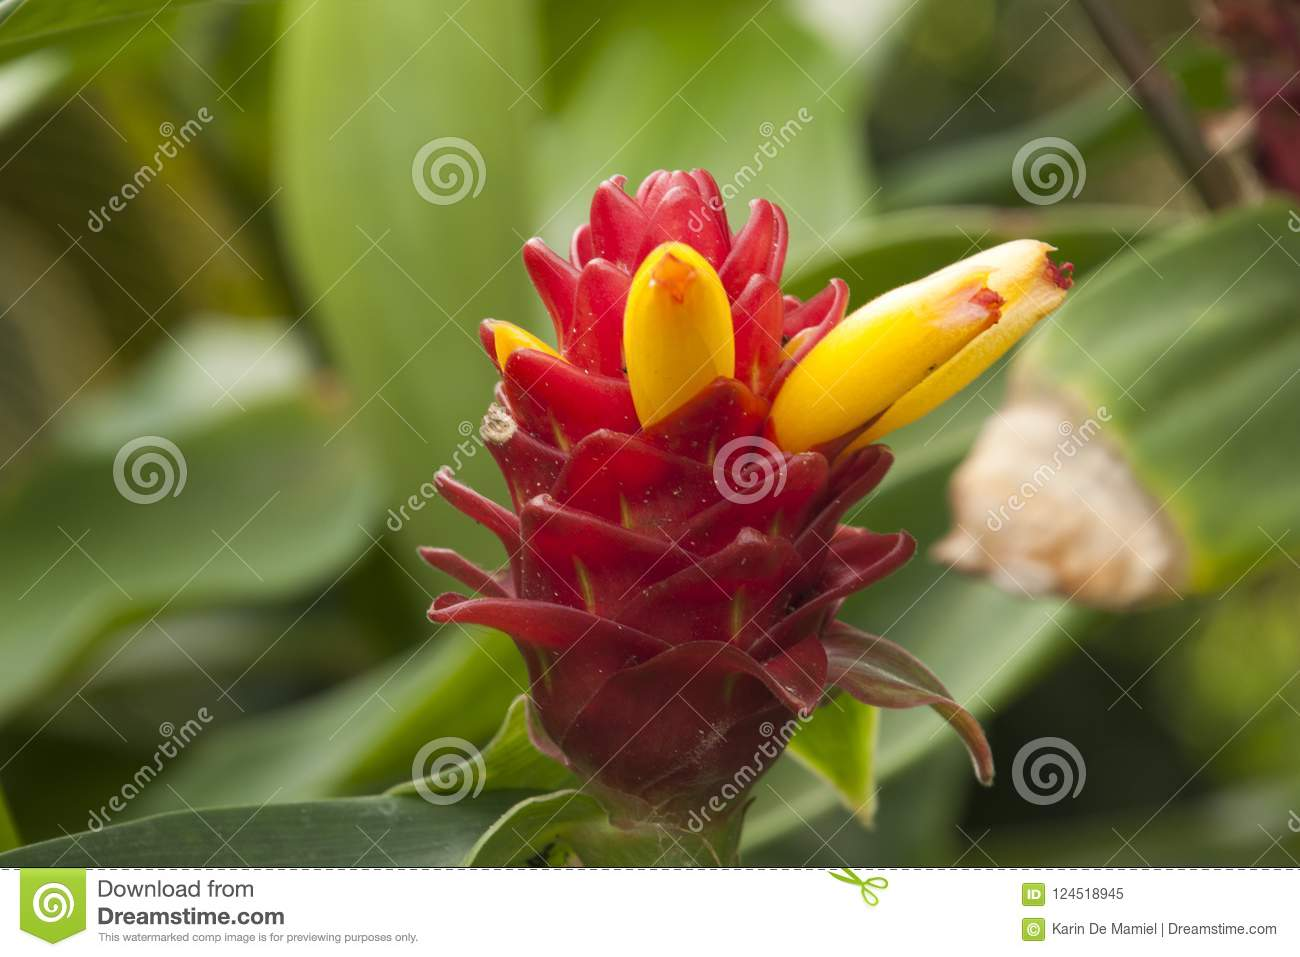 Costus Barbatus With Red Inflorescence And Bright Yellow Tubular